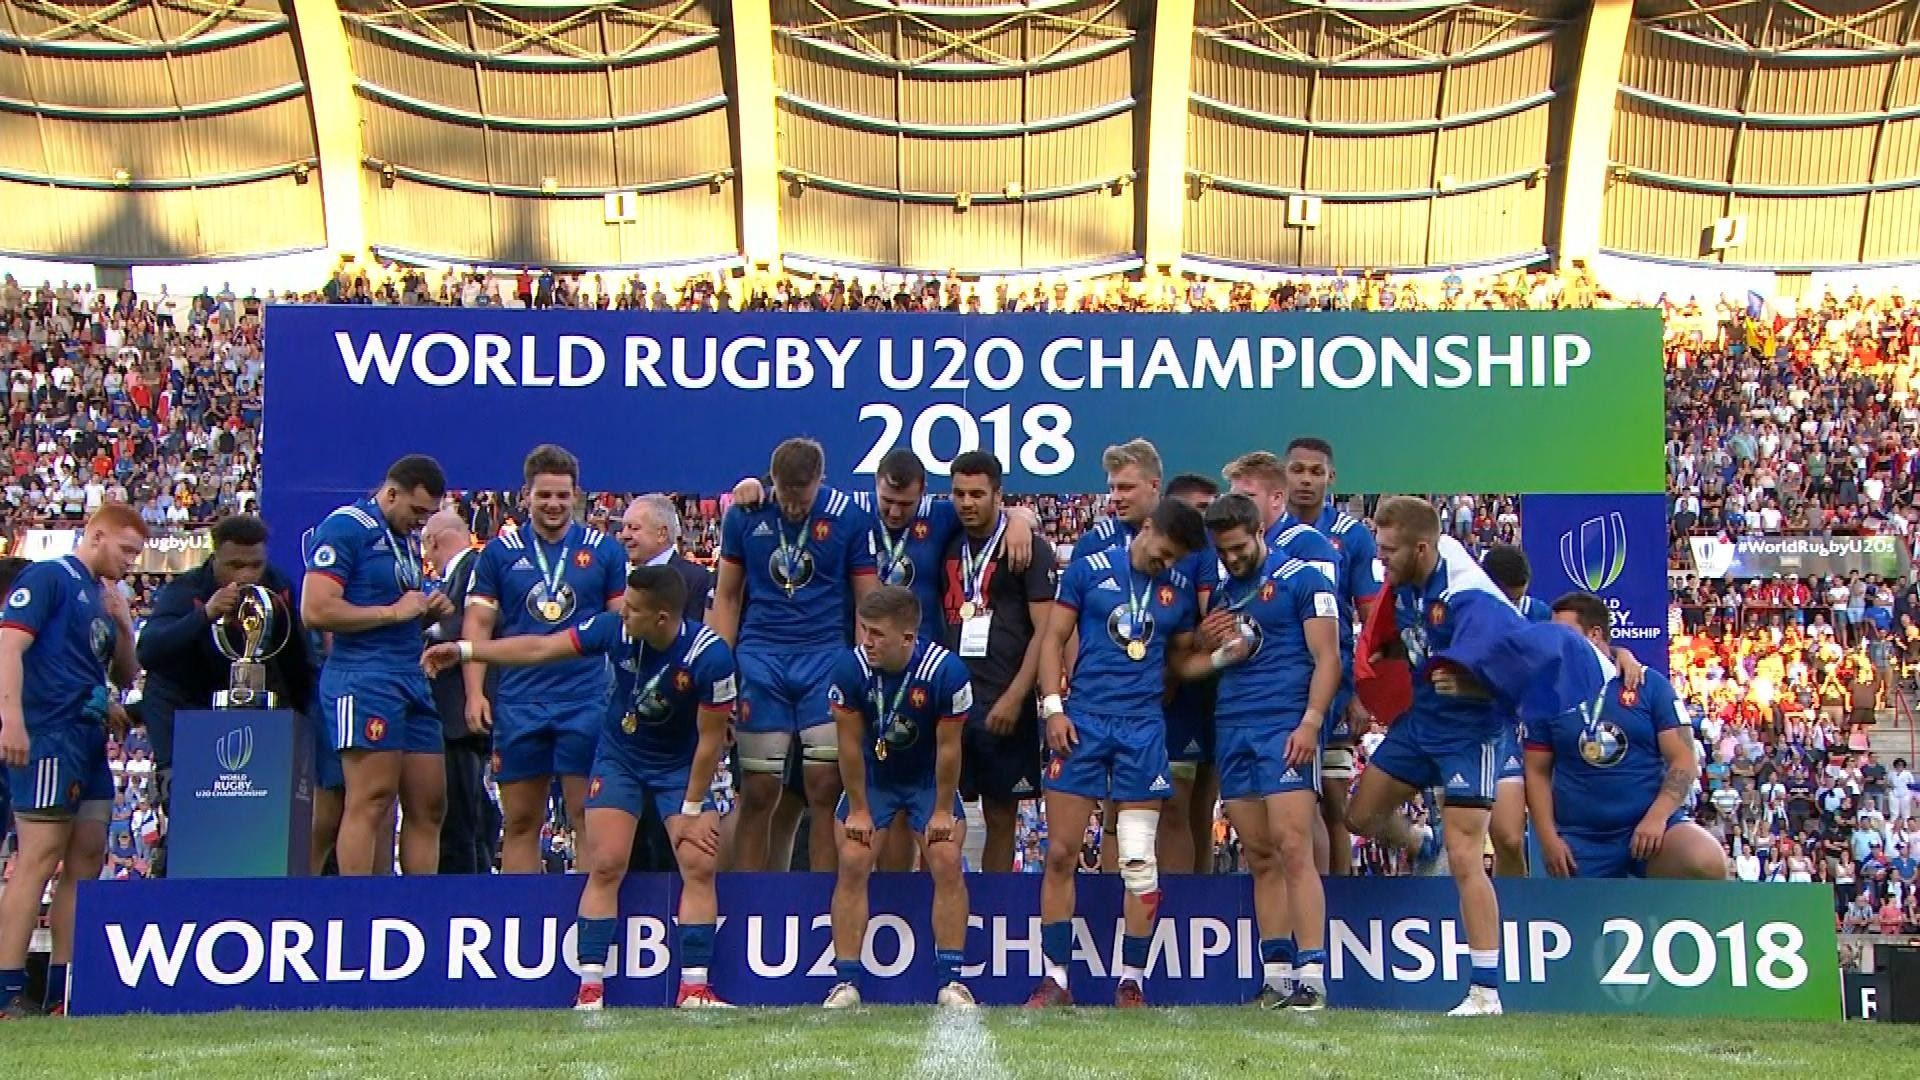 France tops England to win <b>World Rugby U20</b> Championship | NBC Sports